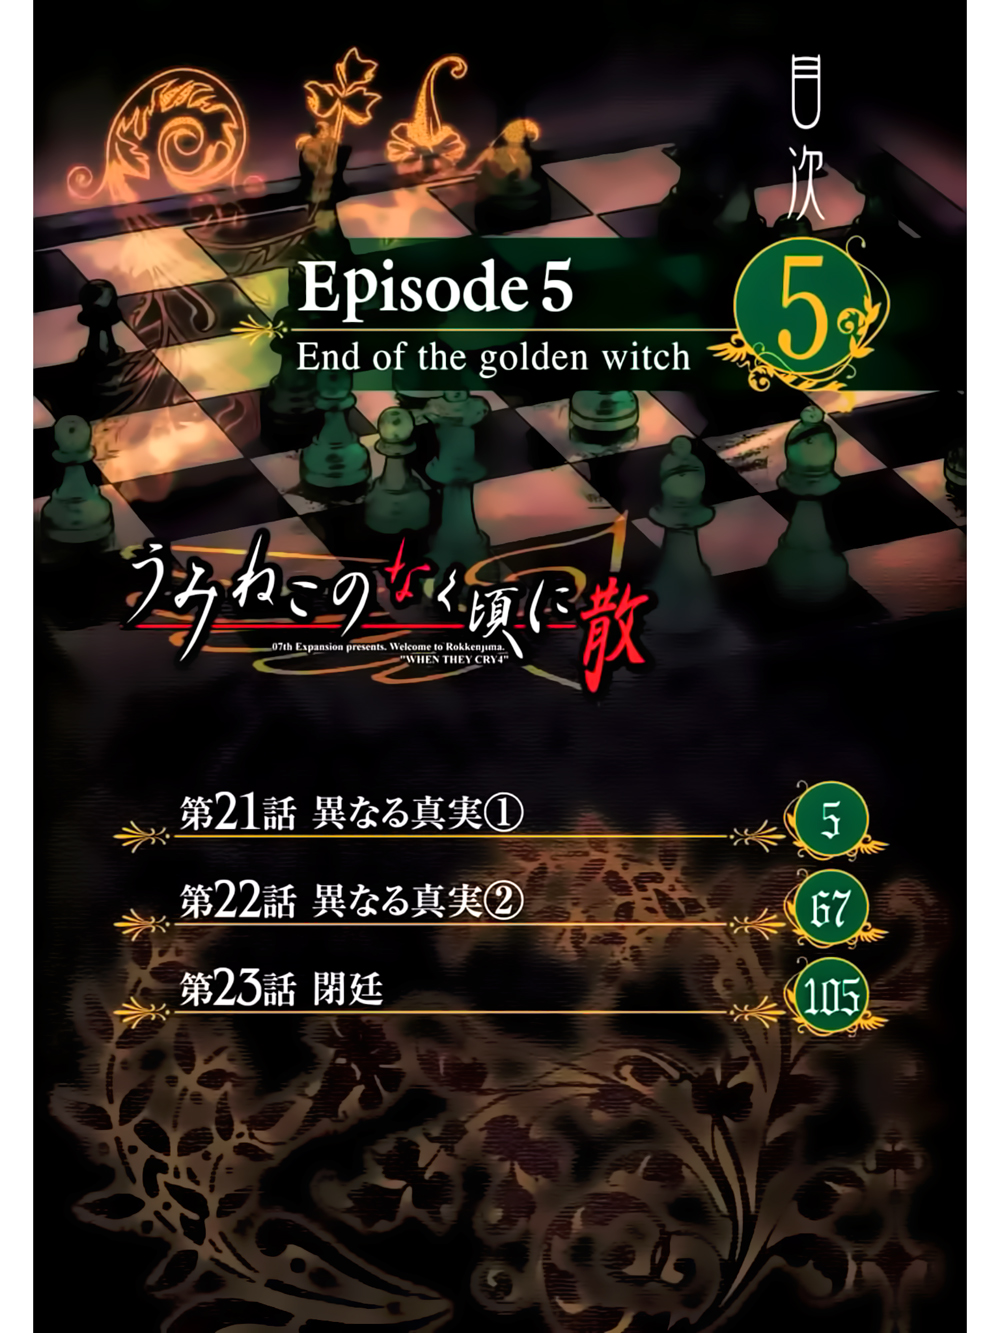 UMINEKO NO NAKU KORO NI CHIRU EPISODE 5: END OF THE GOLDEN WITCH